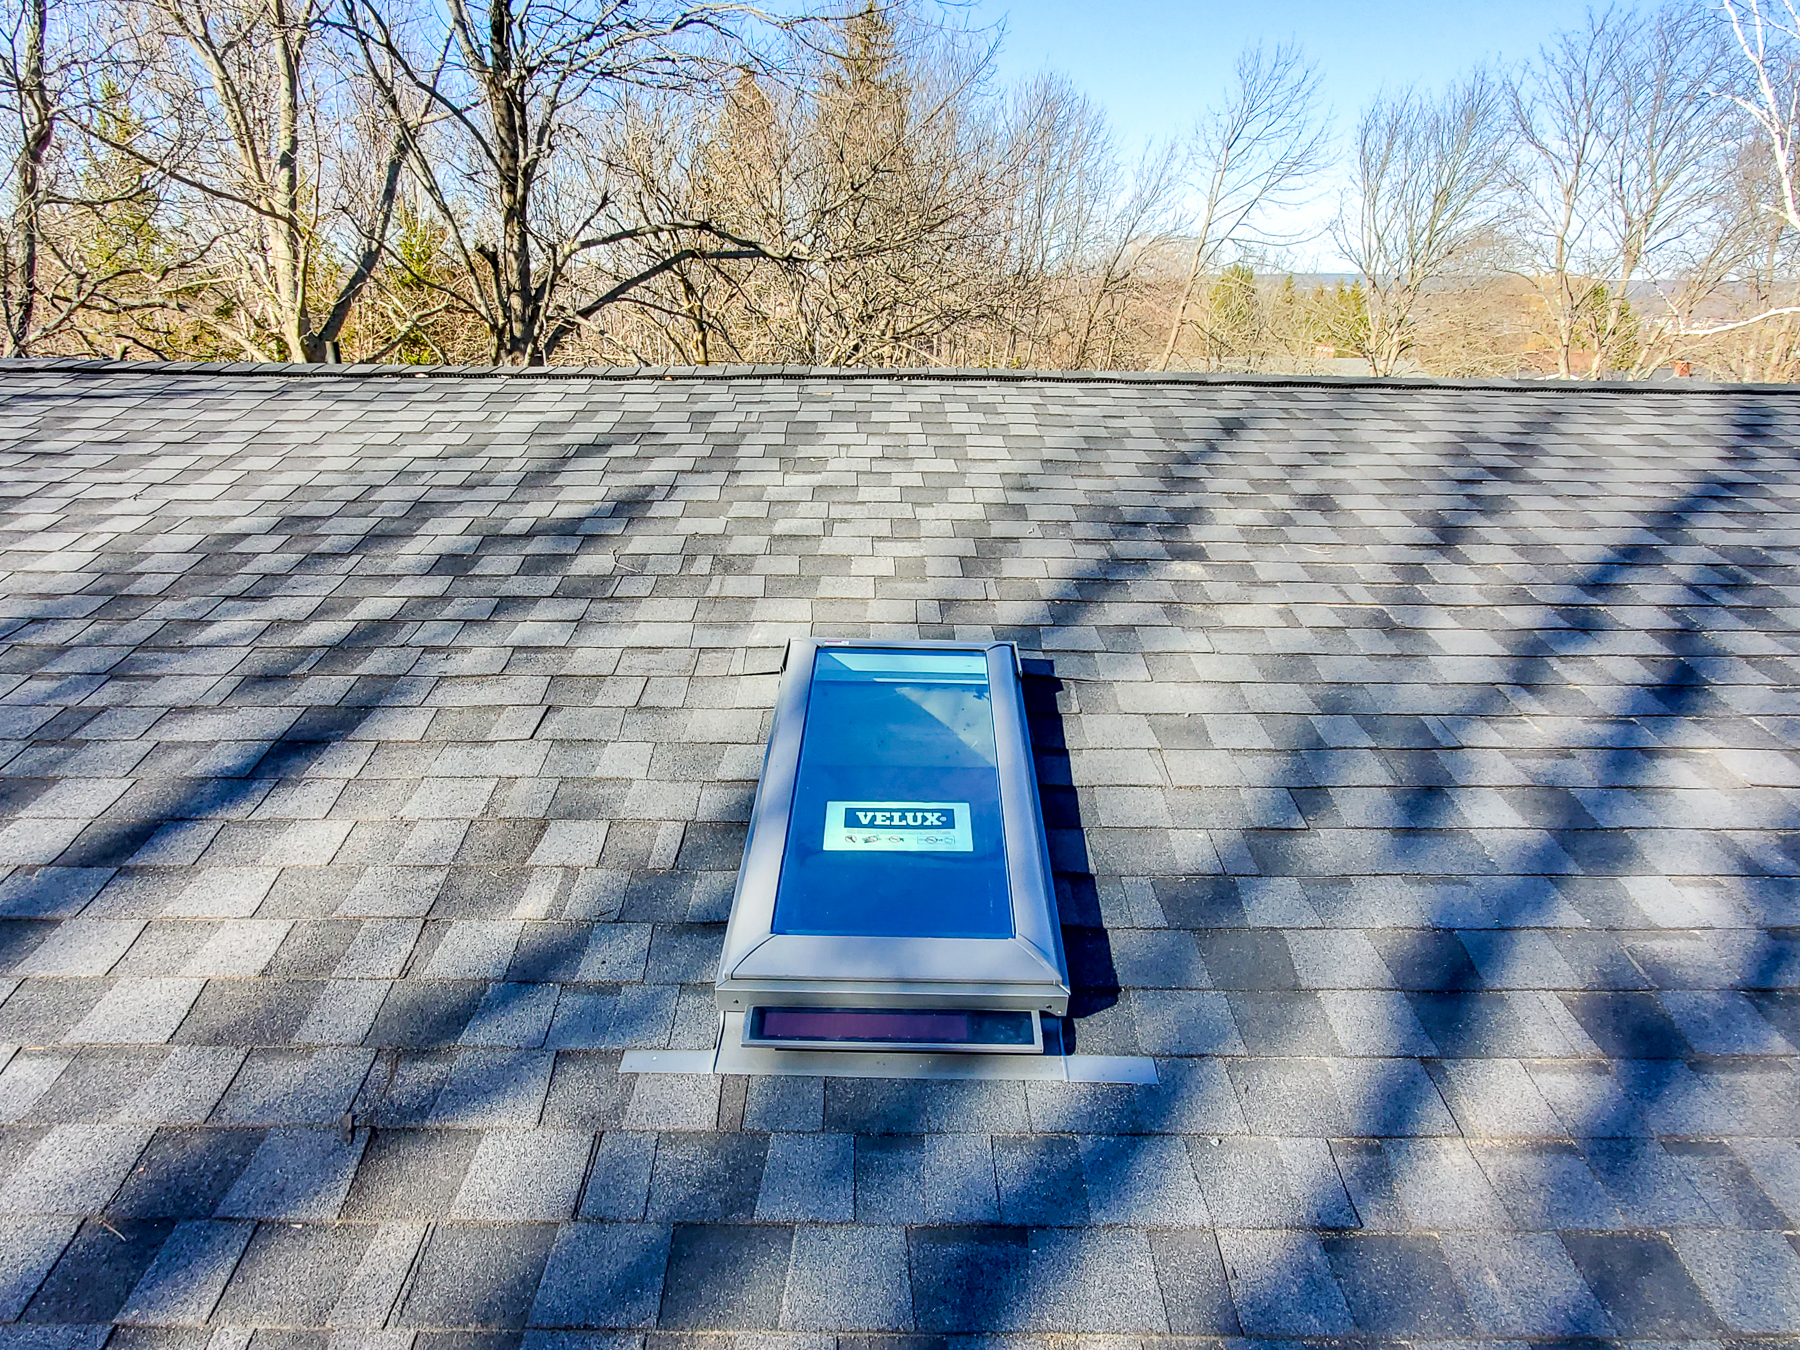 During our last renovation added a kitchen skylight to see if they werea good fit for our home. Short answer - YES! Our Velux skylight is a game changer.